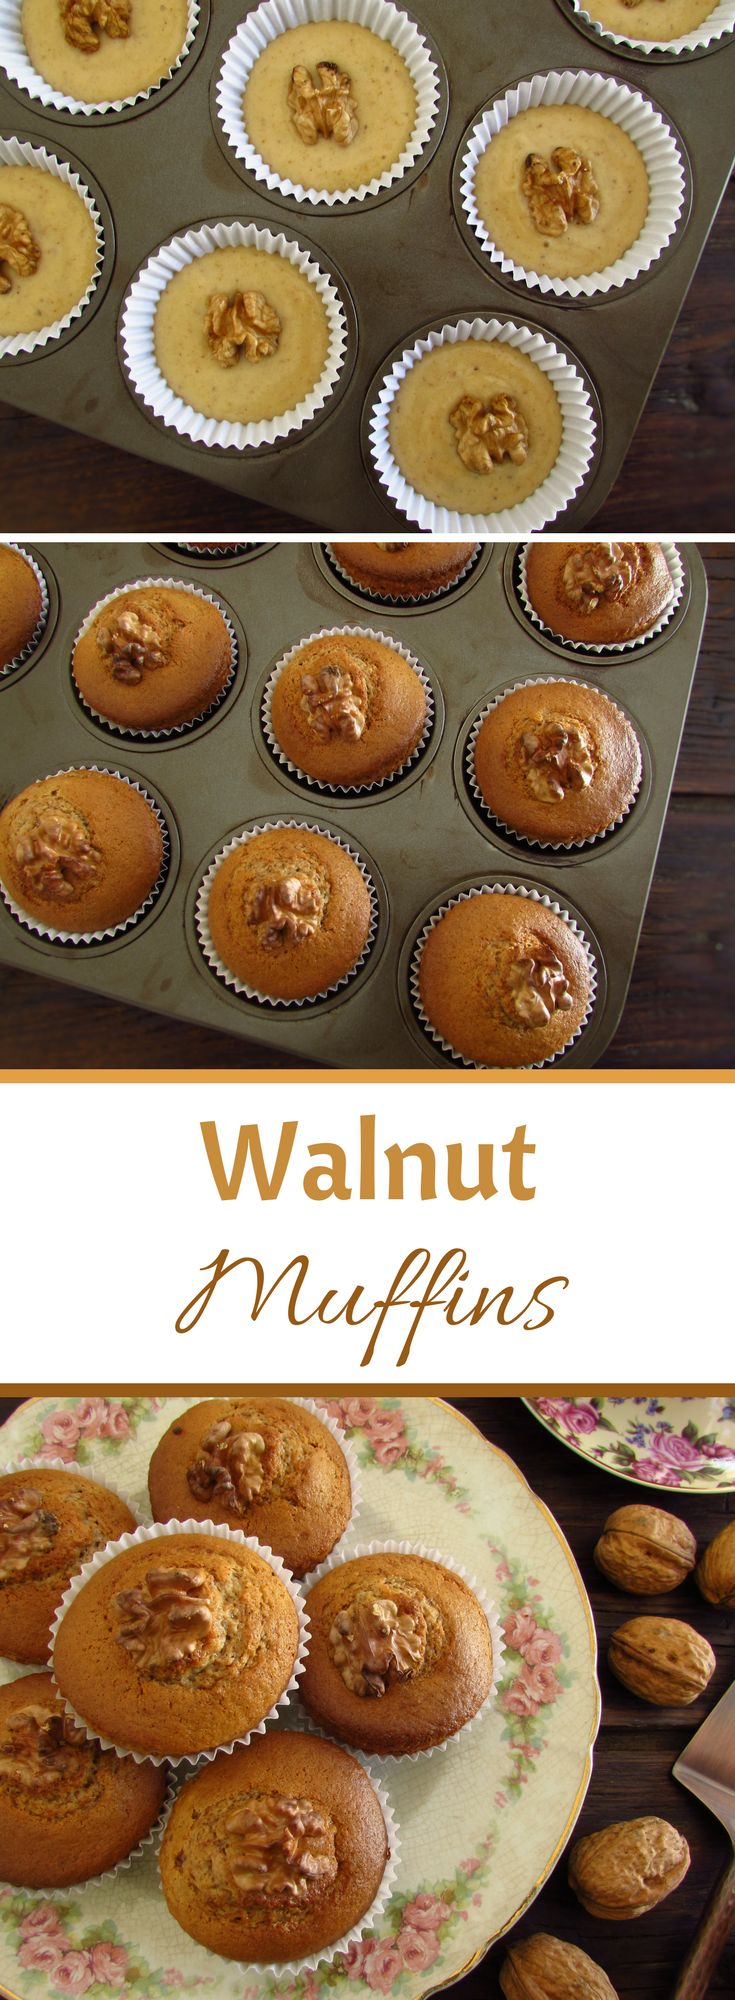 Walnut muffins | Food From Portugal. If you like dried fruits we have an excellent recipe to present to you, walnut muffins! They are quite tasty and have a fantastic presentation! At a party among friends this walnut muffins are going to make success!! Dare yourself! #muffins #recipe